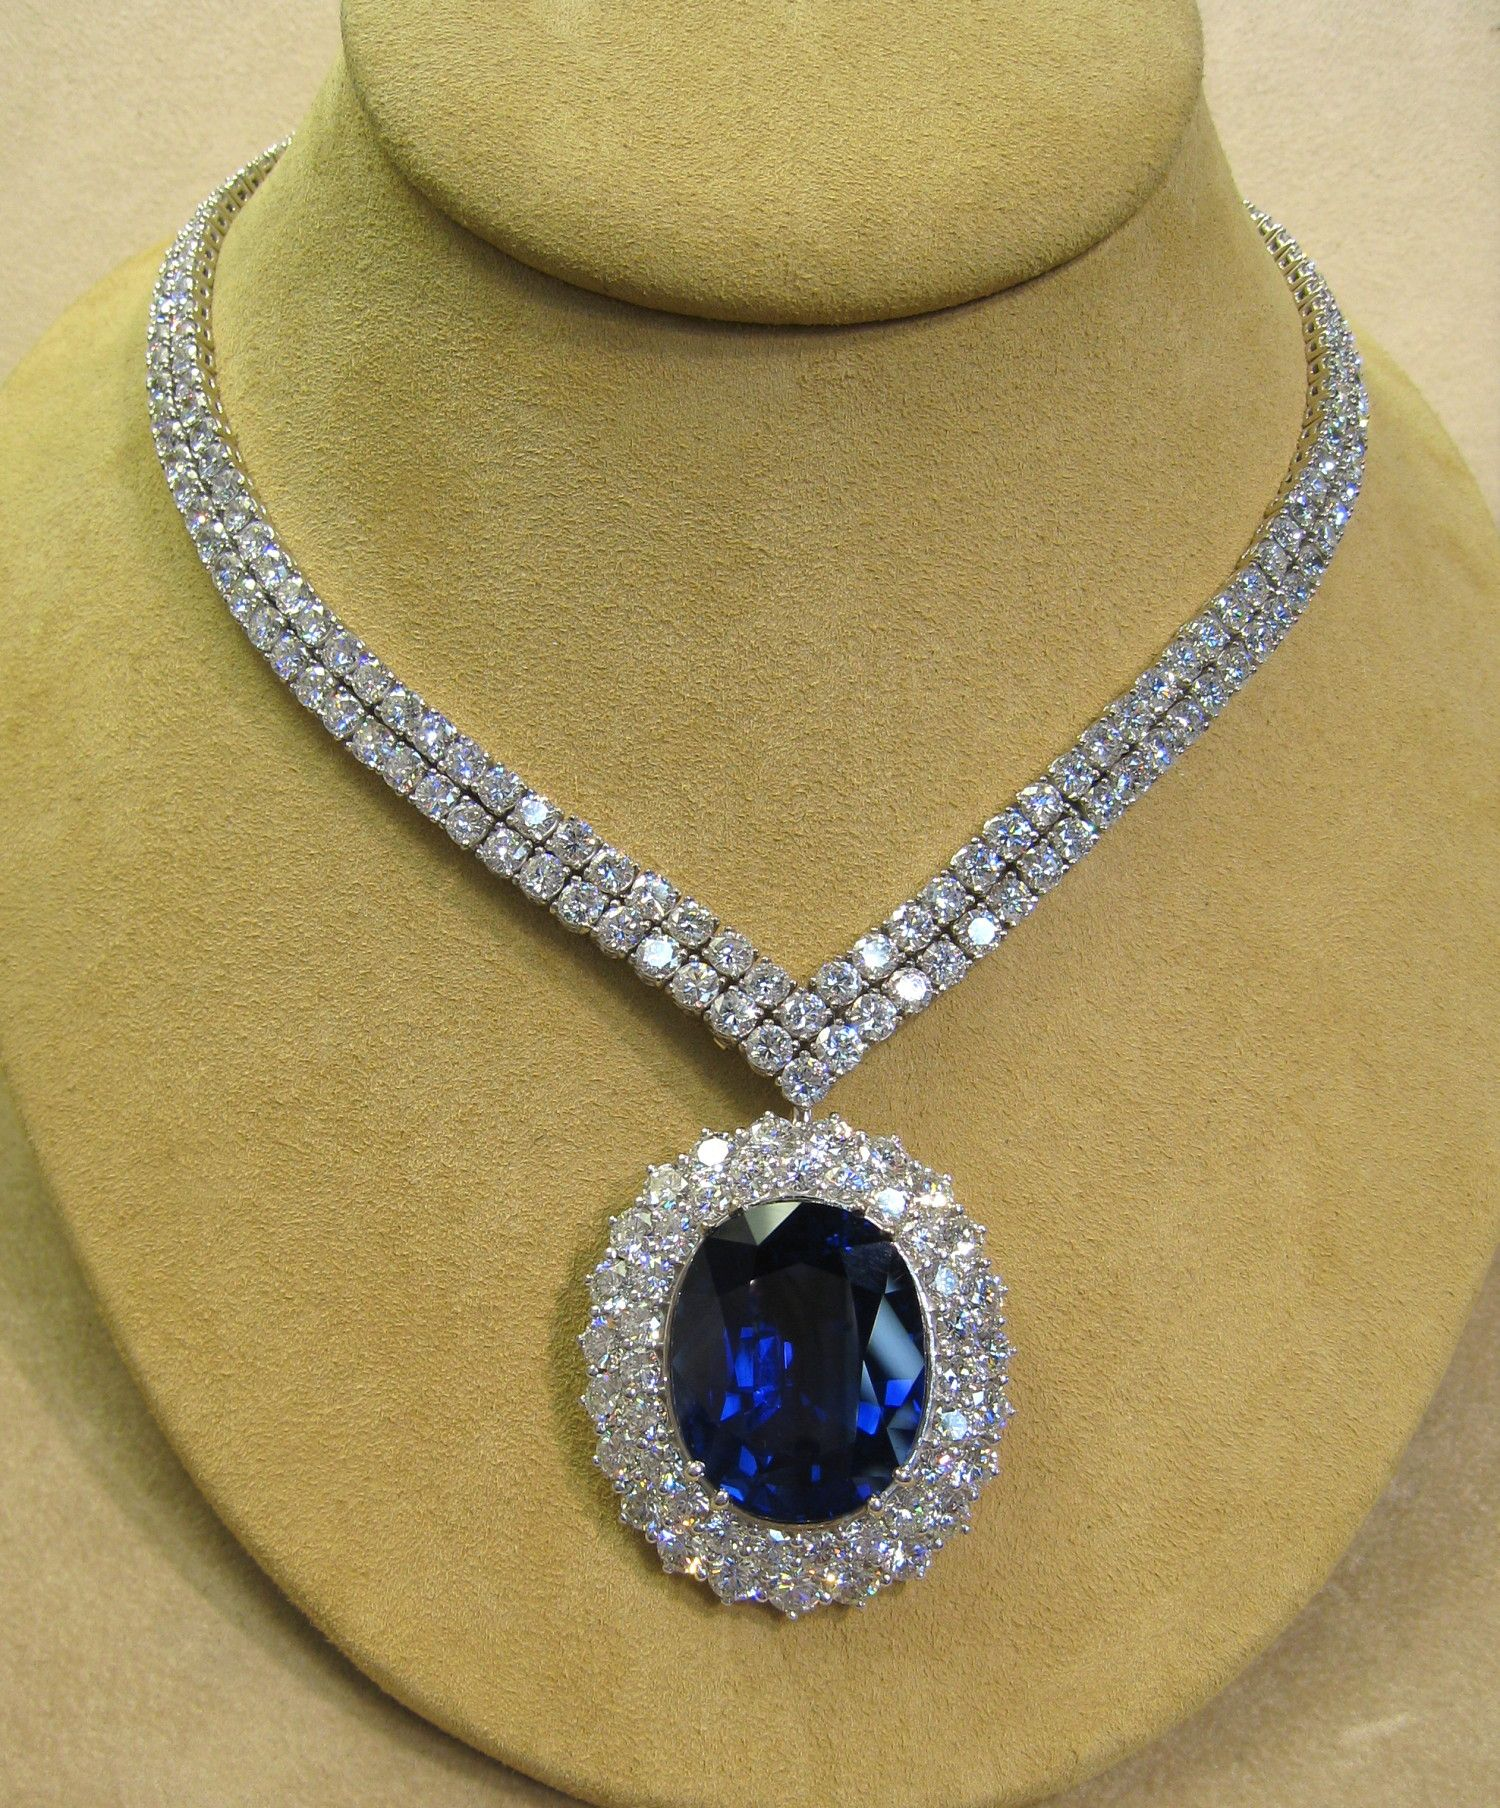 Moissanite Jewelers Moissanite And Diamond Necklace